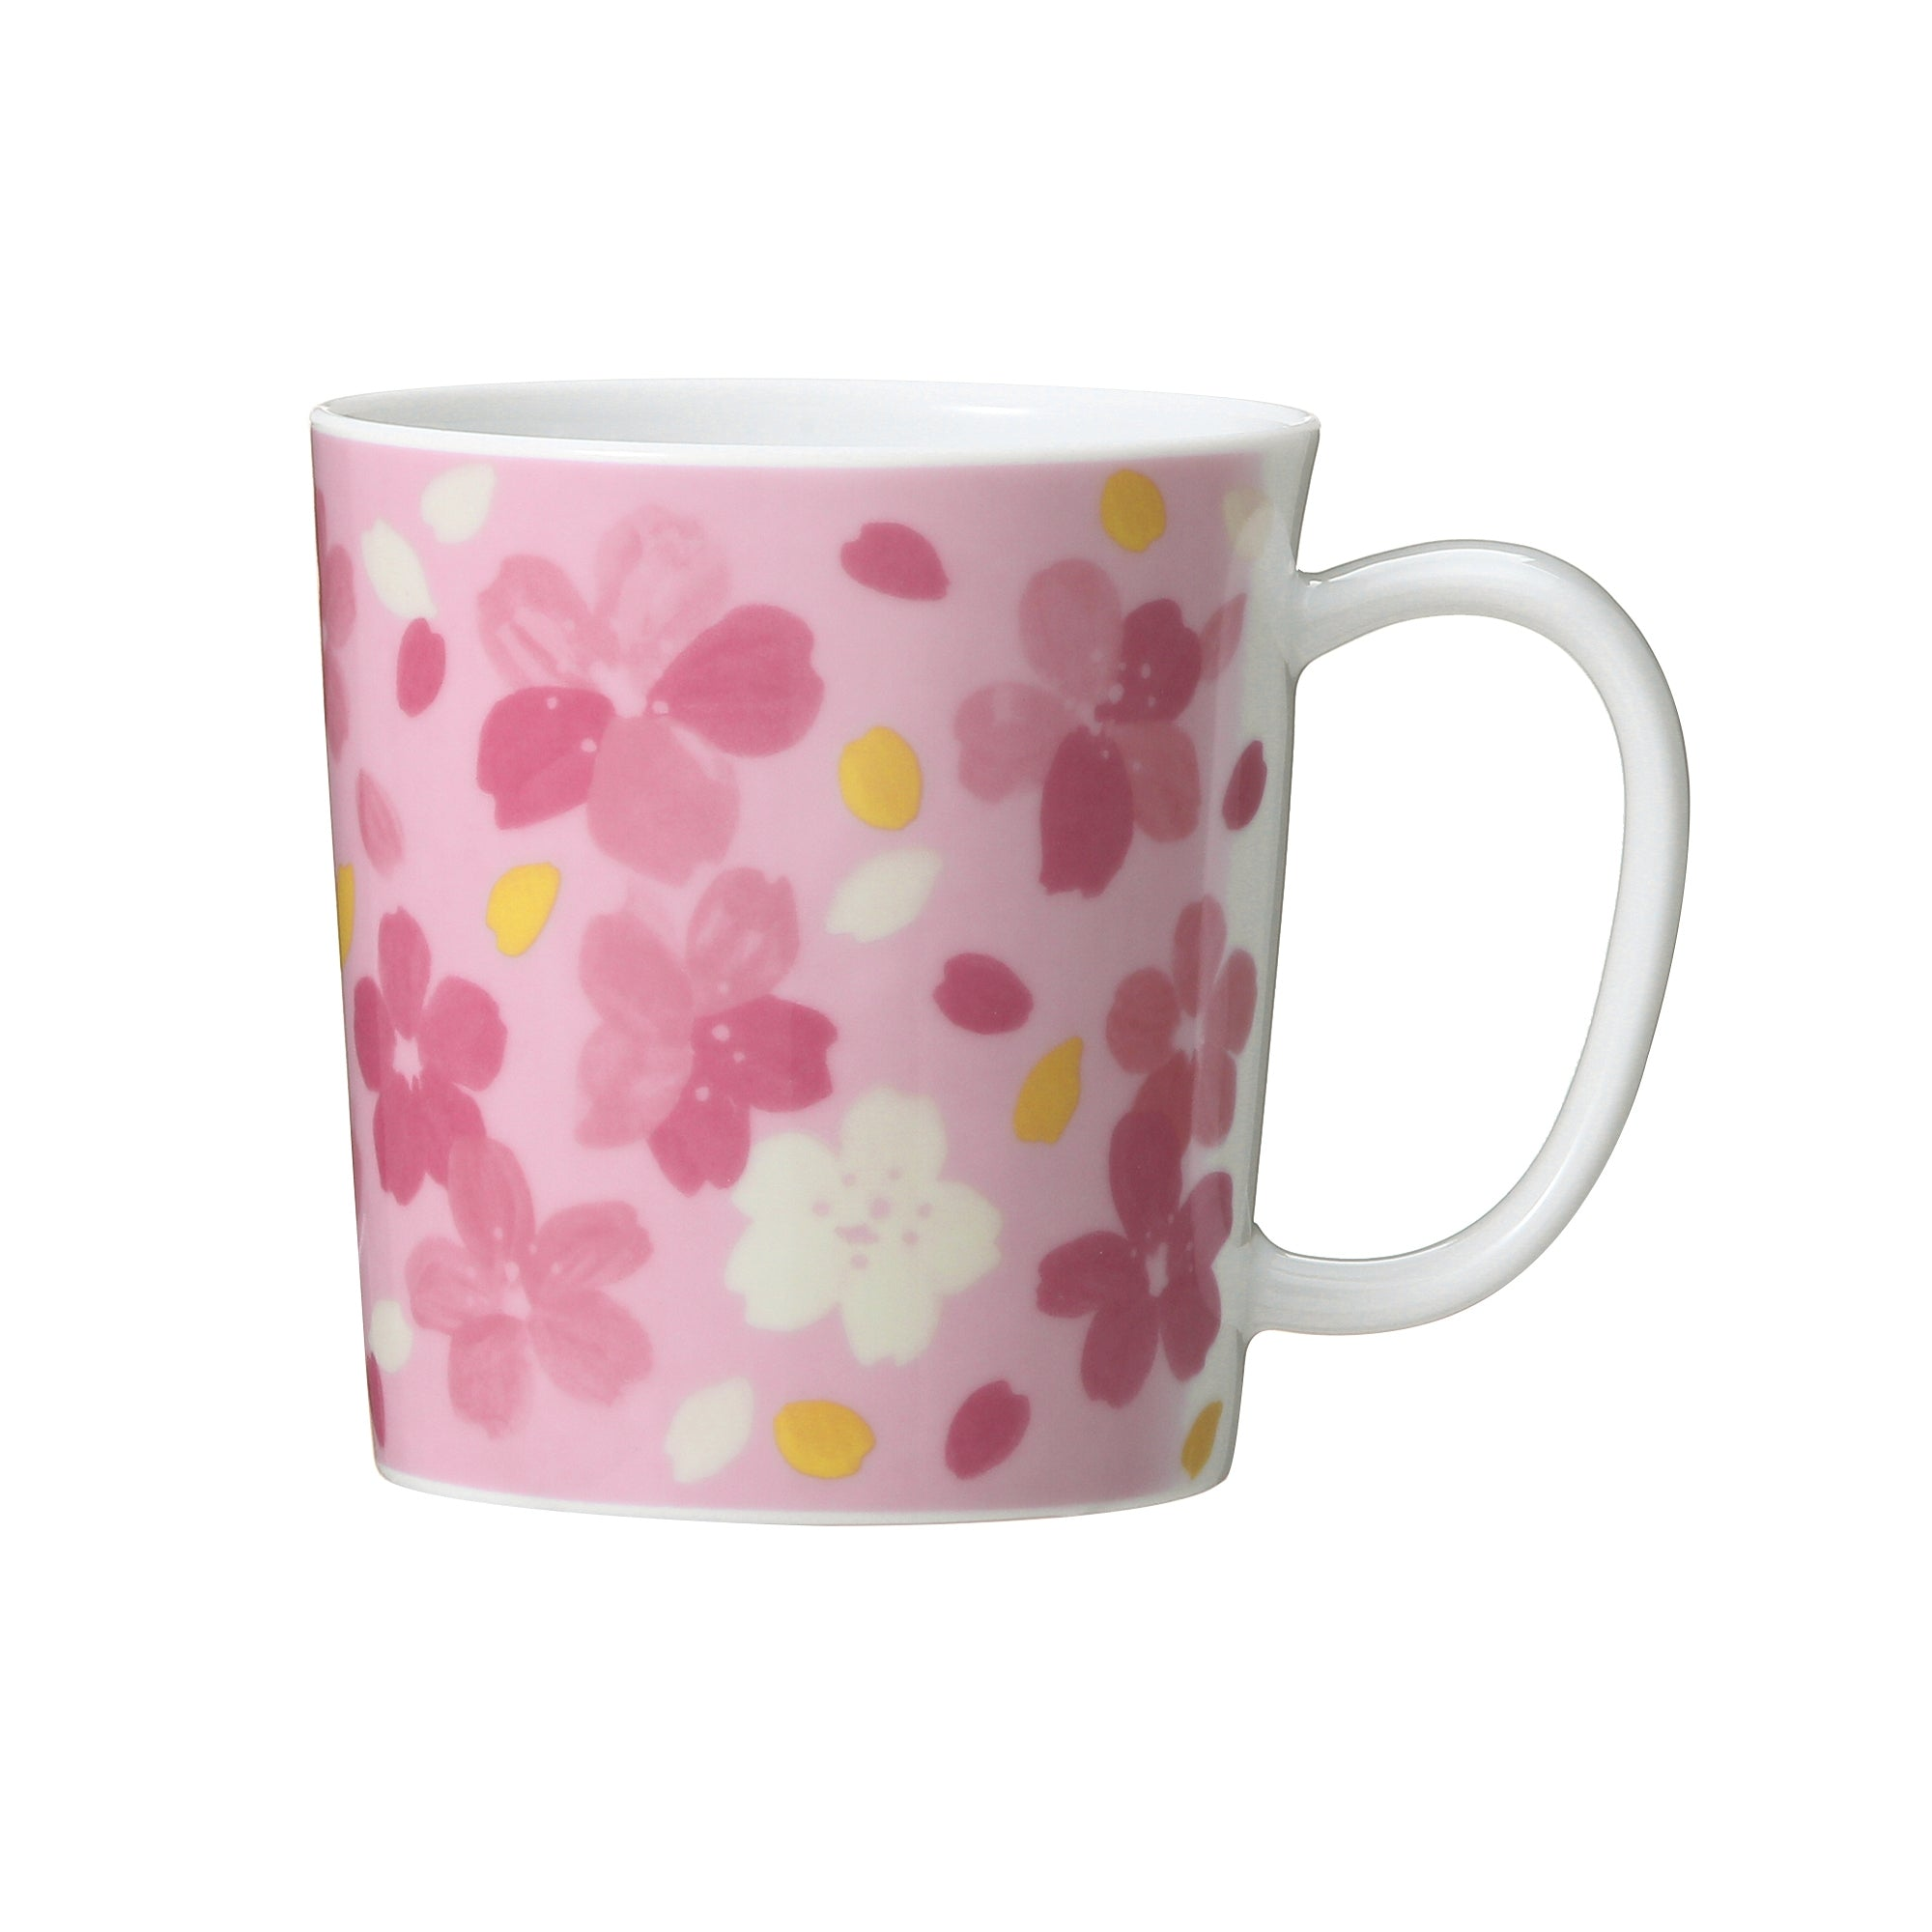 Petals Mug Cup Starbucks Sun 2019 Japan Sakura Vol2 355ml HED9I2